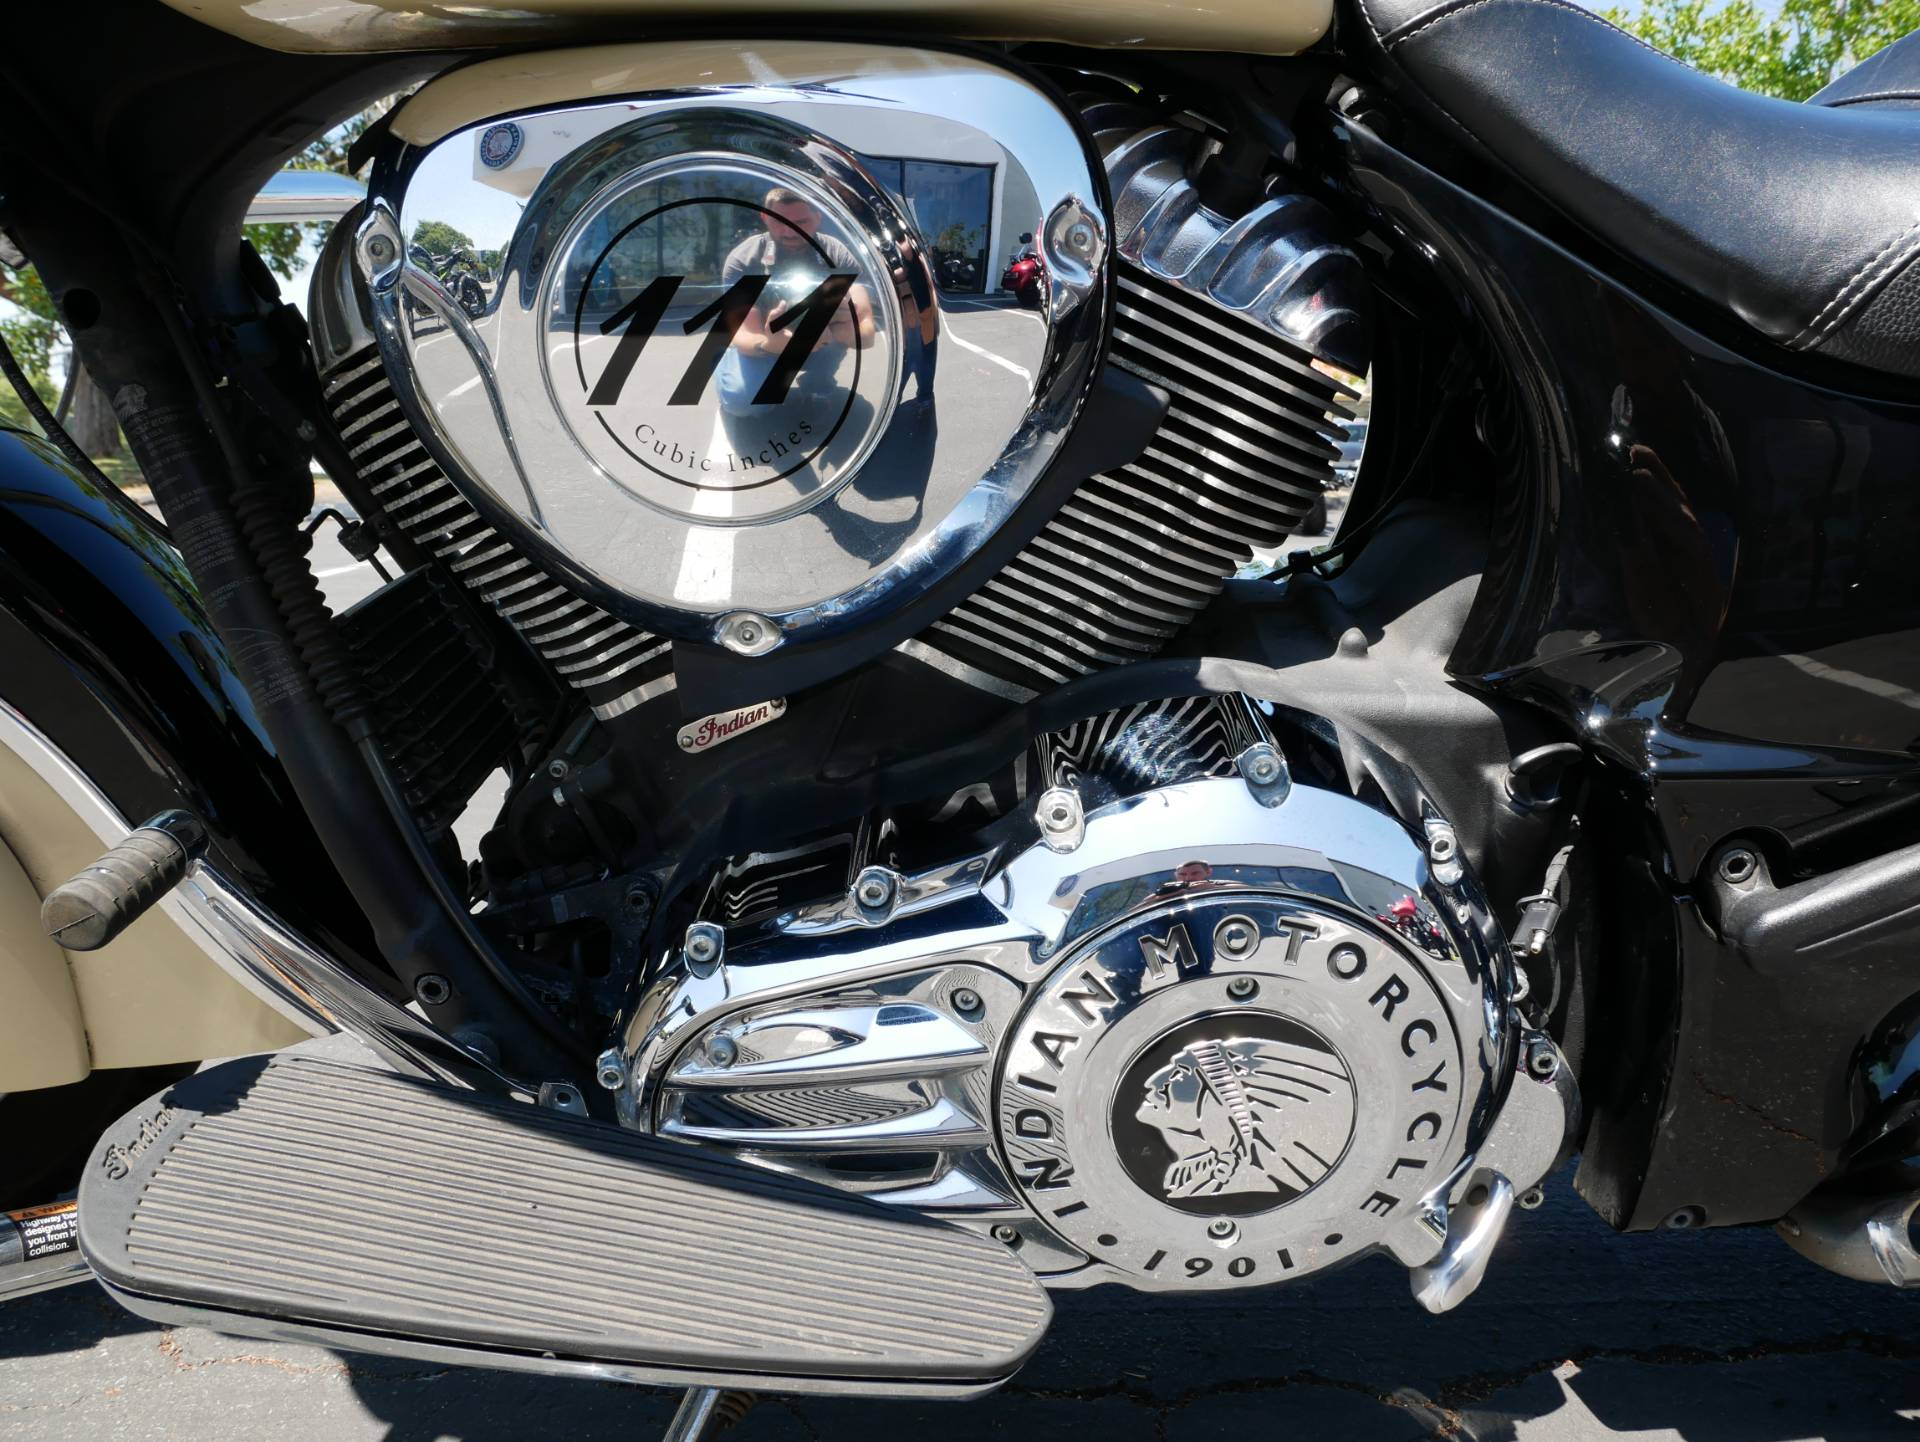 2019 Indian Chieftain® Classic ABS in San Diego, California - Photo 11